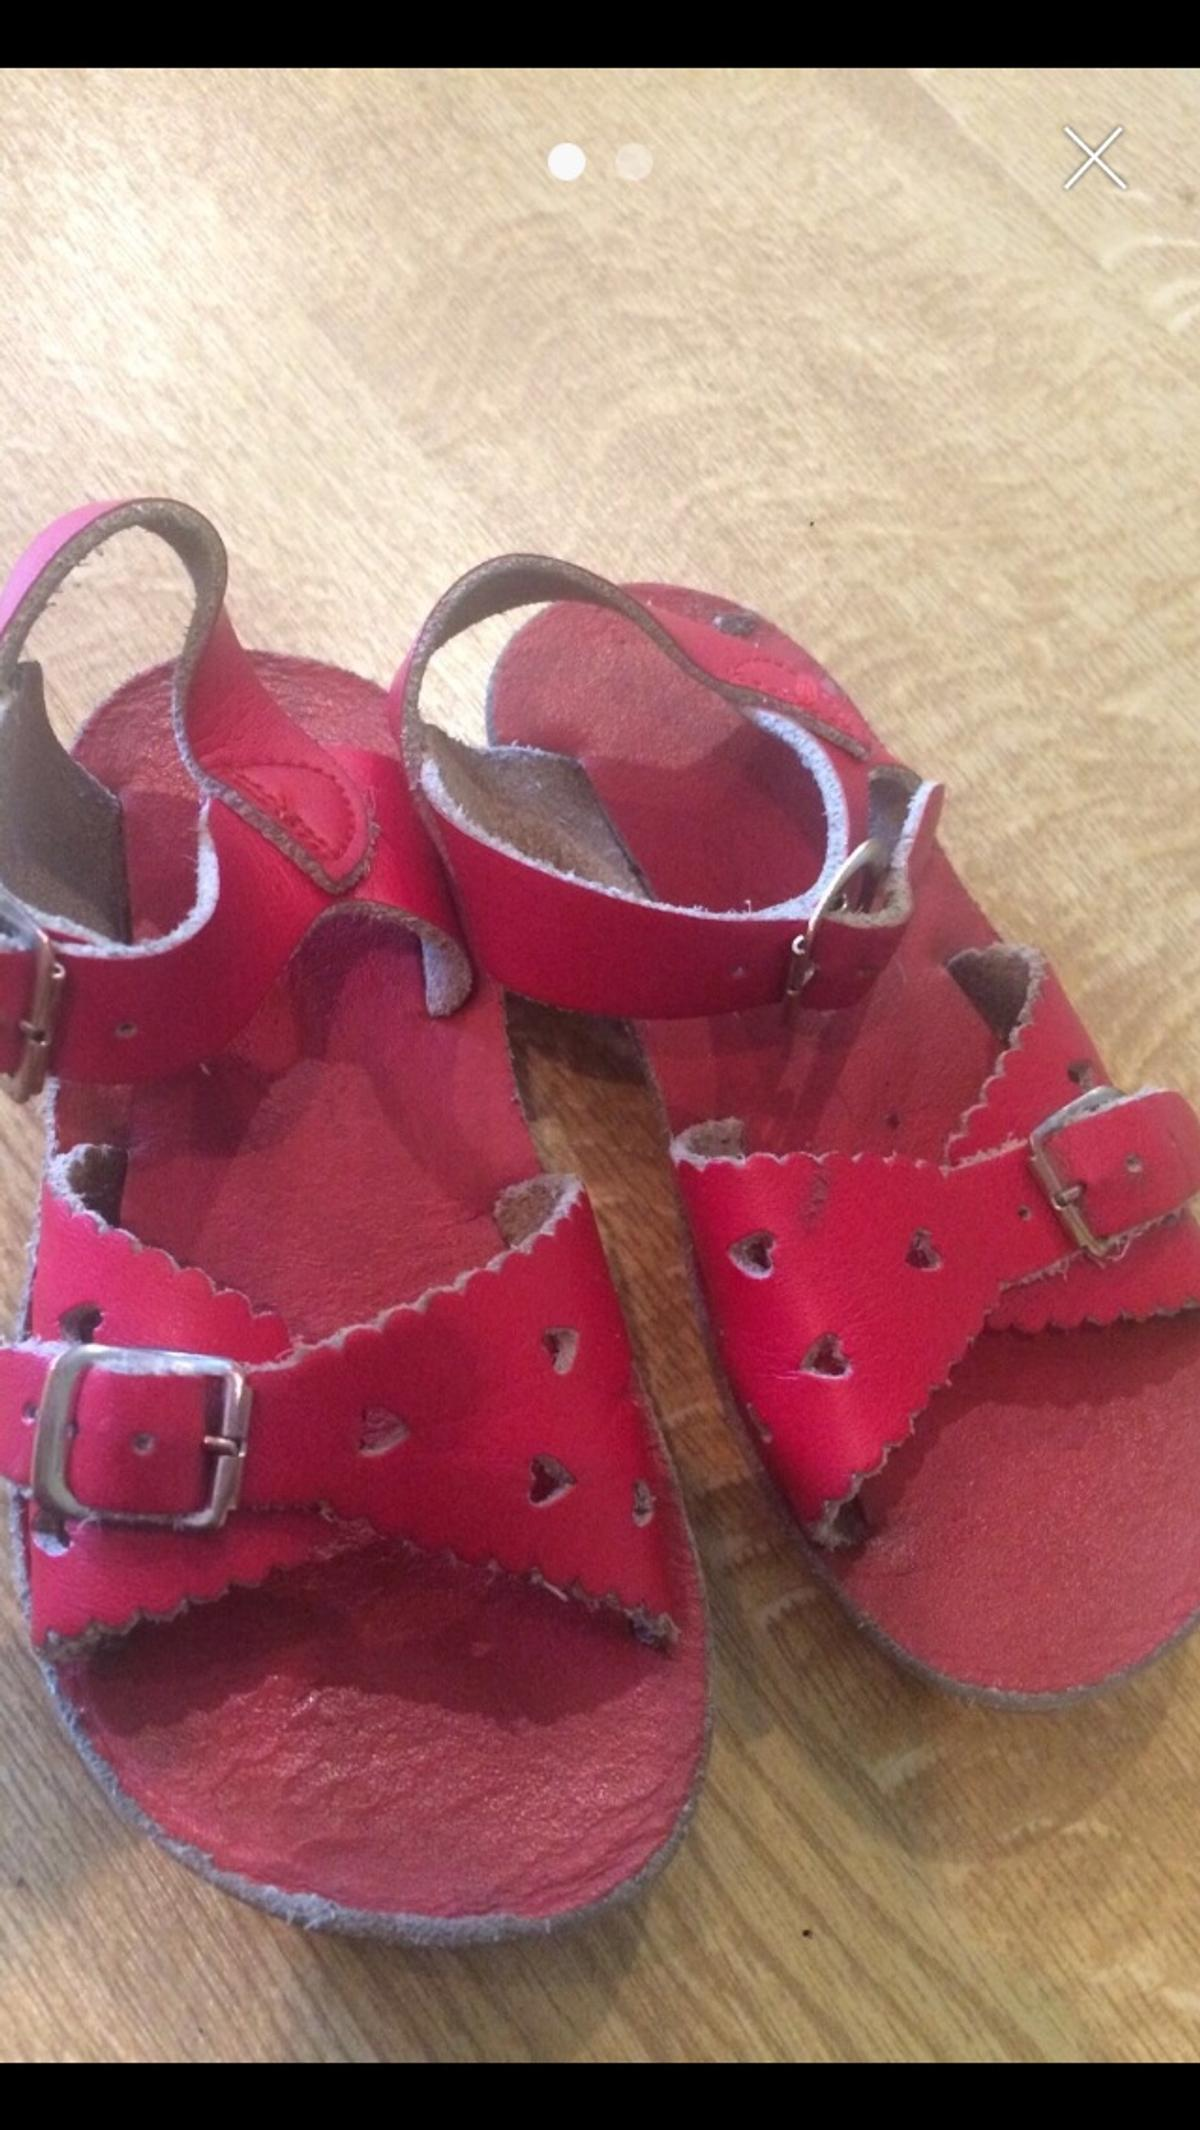 f15fdbbe9ccb Girls saltwater sandals size 8 in LN2 Lincoln for £15.00 for sale ...